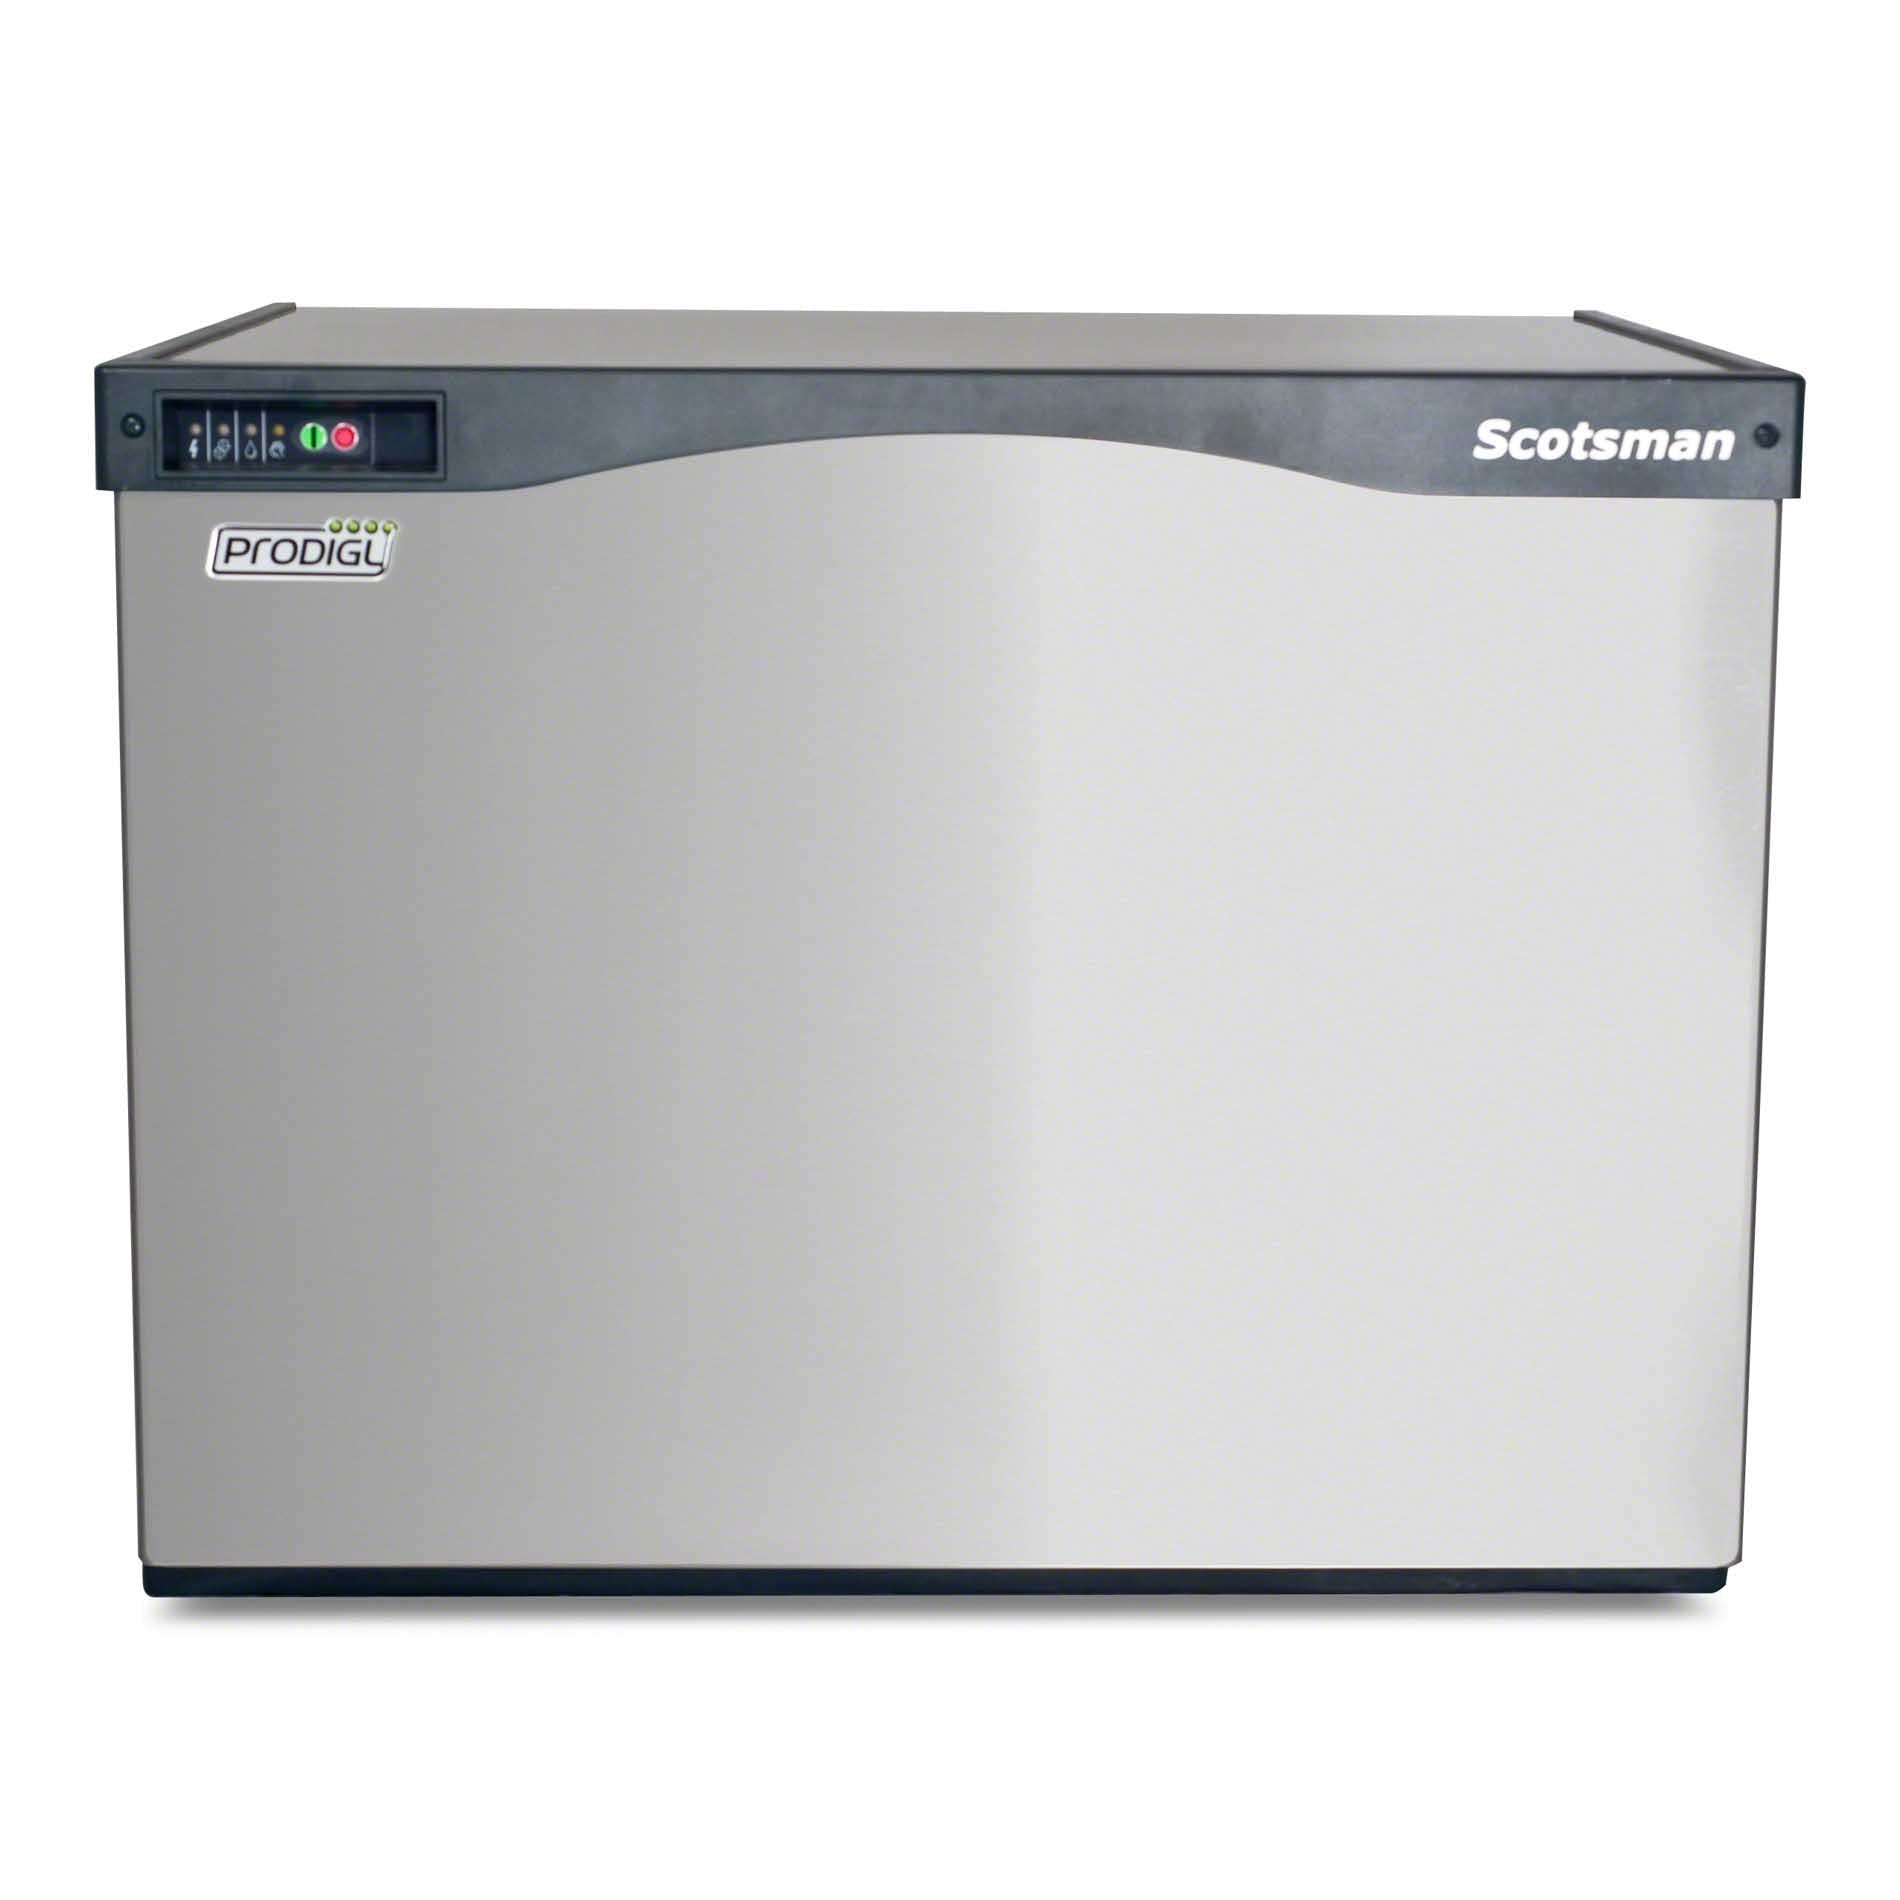 Scotsman - C0530MW-1A 595 lb Full Size Cube Ice Machine - Prodigy Series Ice machine sold by Food Service Warehouse